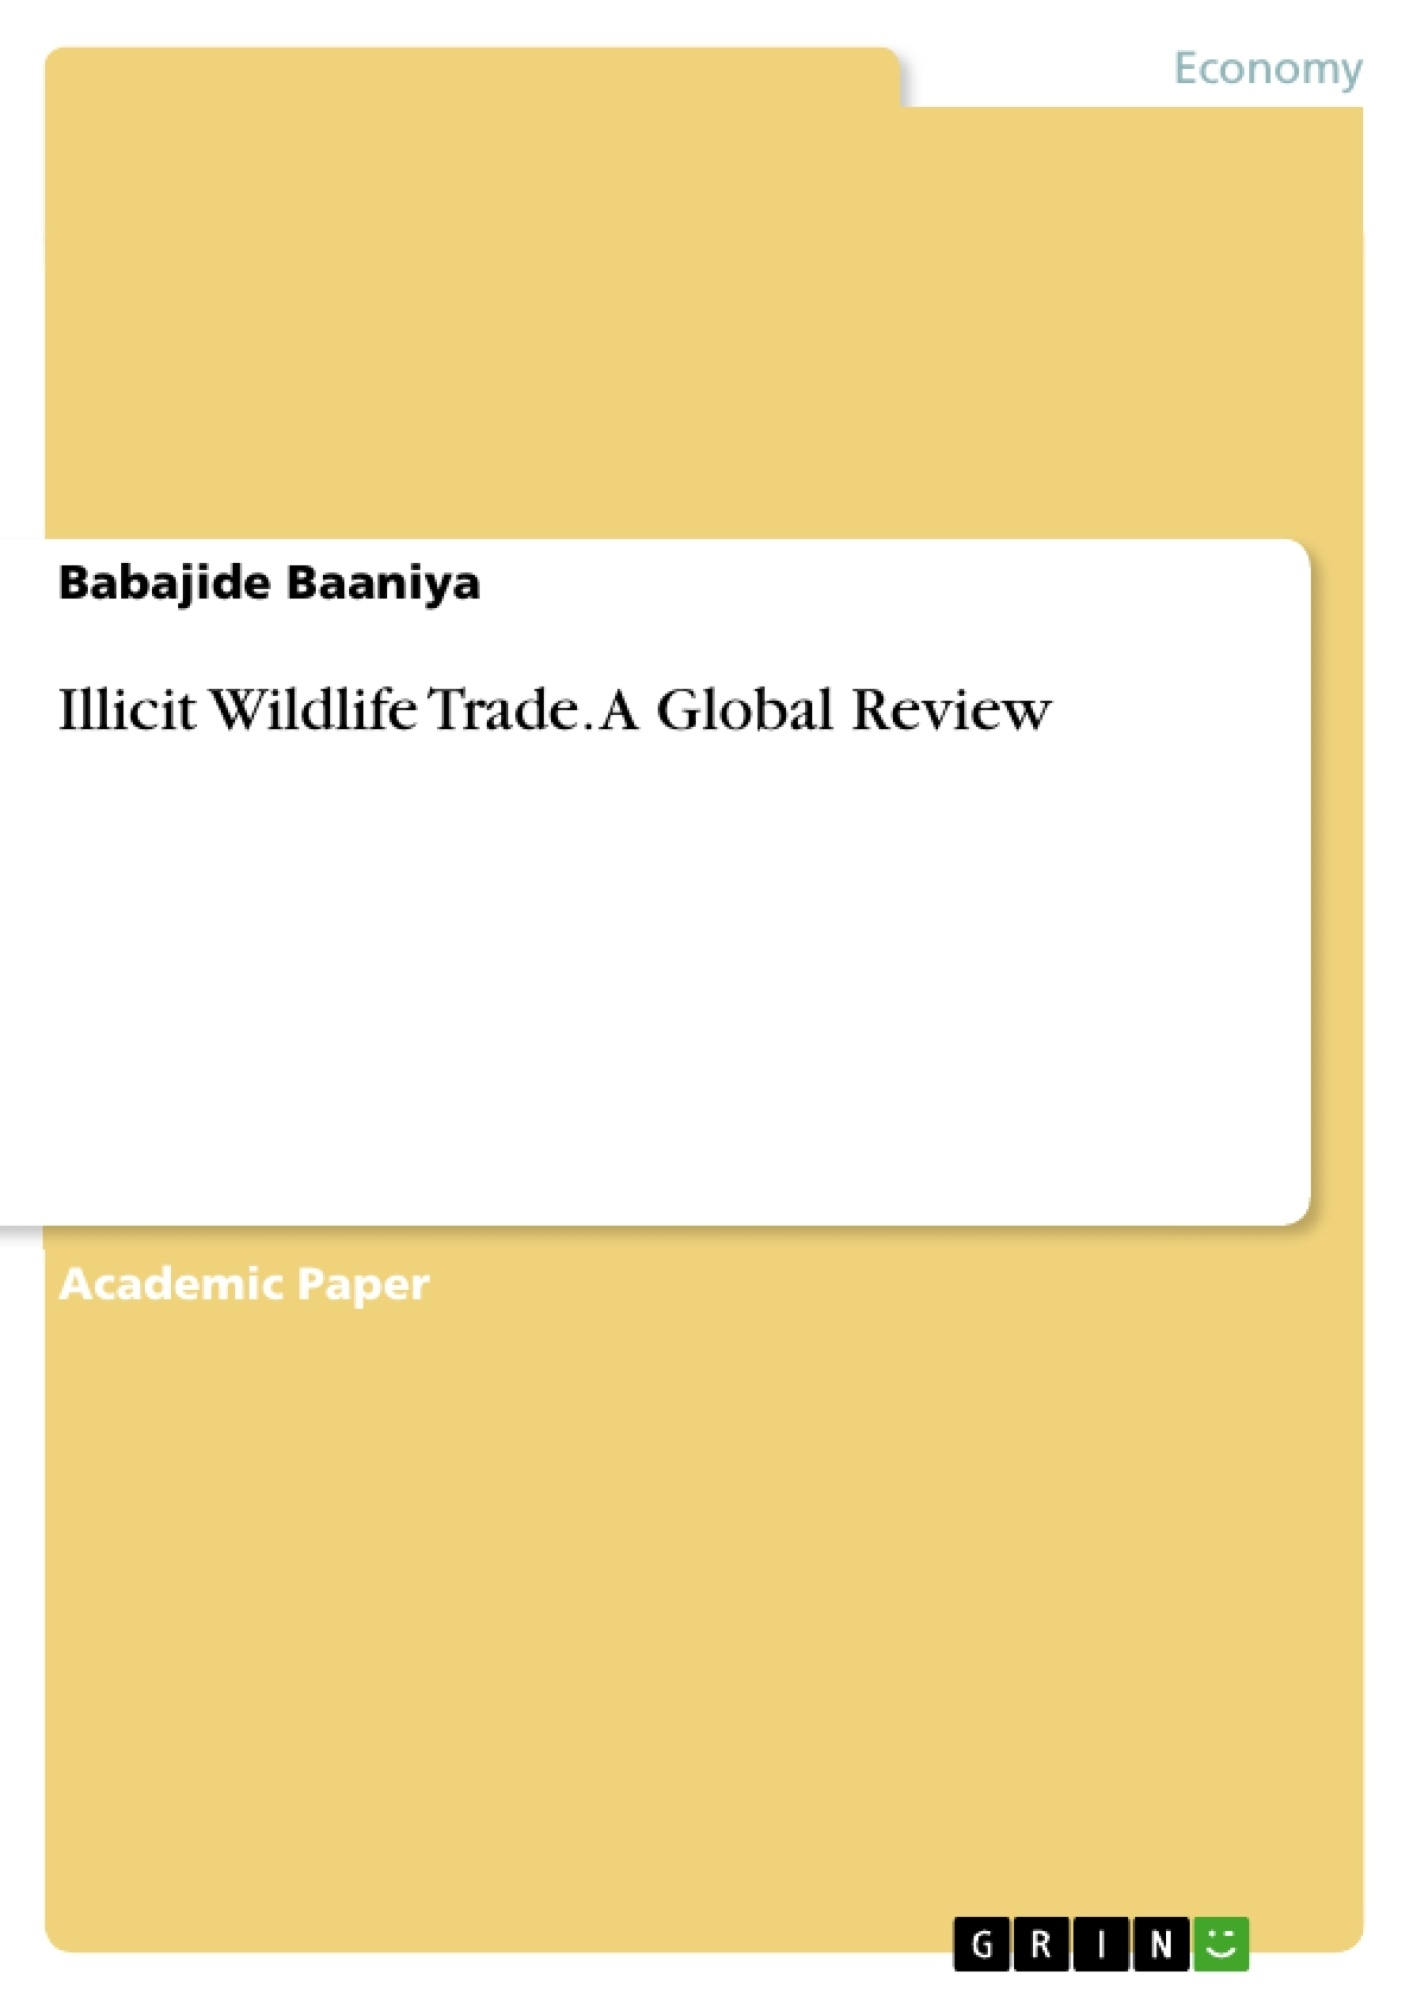 Title: Illicit Wildlife Trade. A Global Review